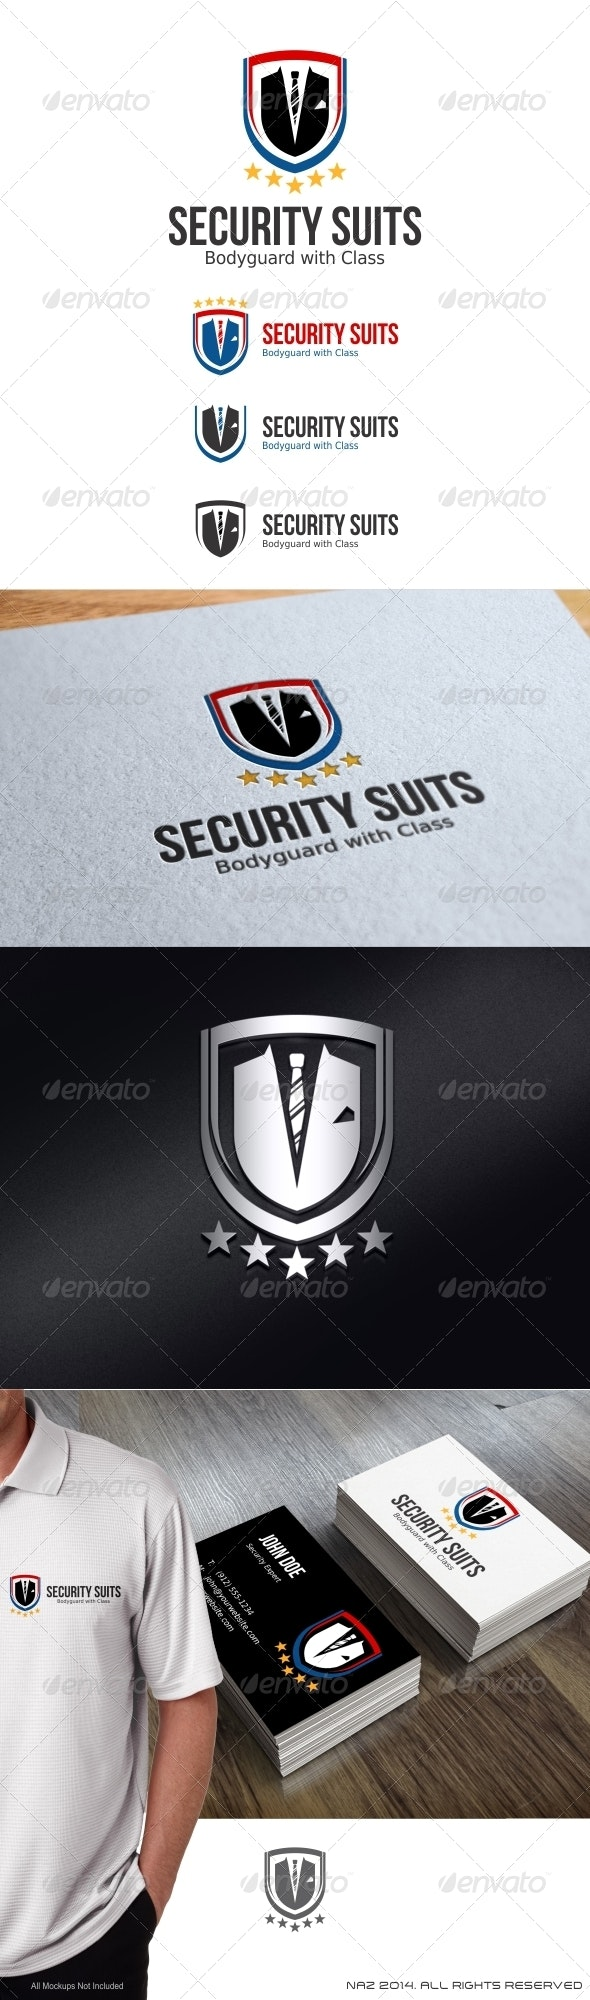 Security Suits Logo - Objects Logo Templates